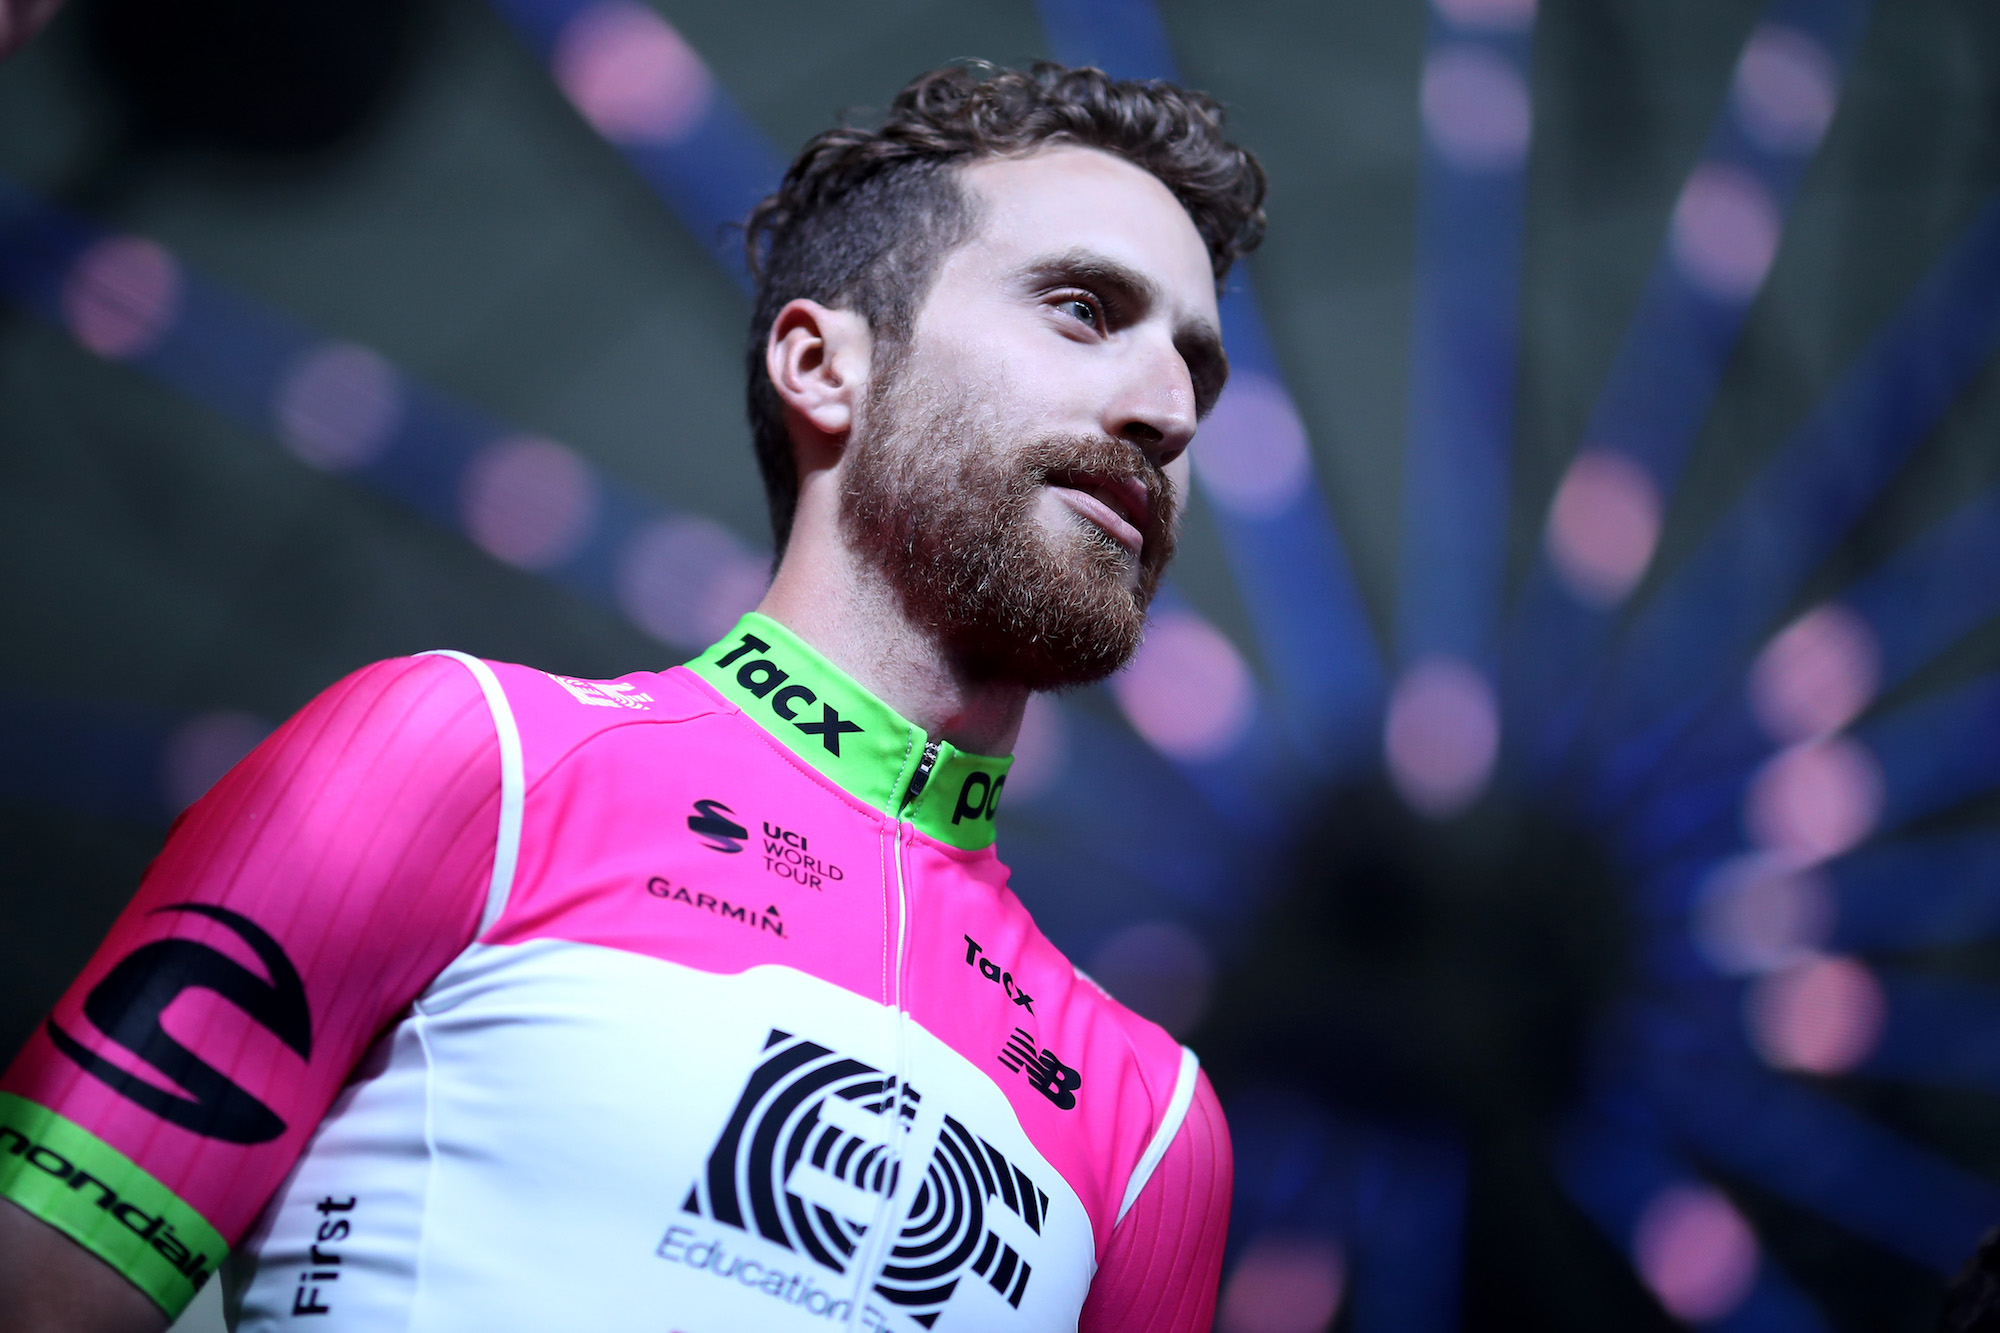 Taylor Phinney retires from professional racing at 29